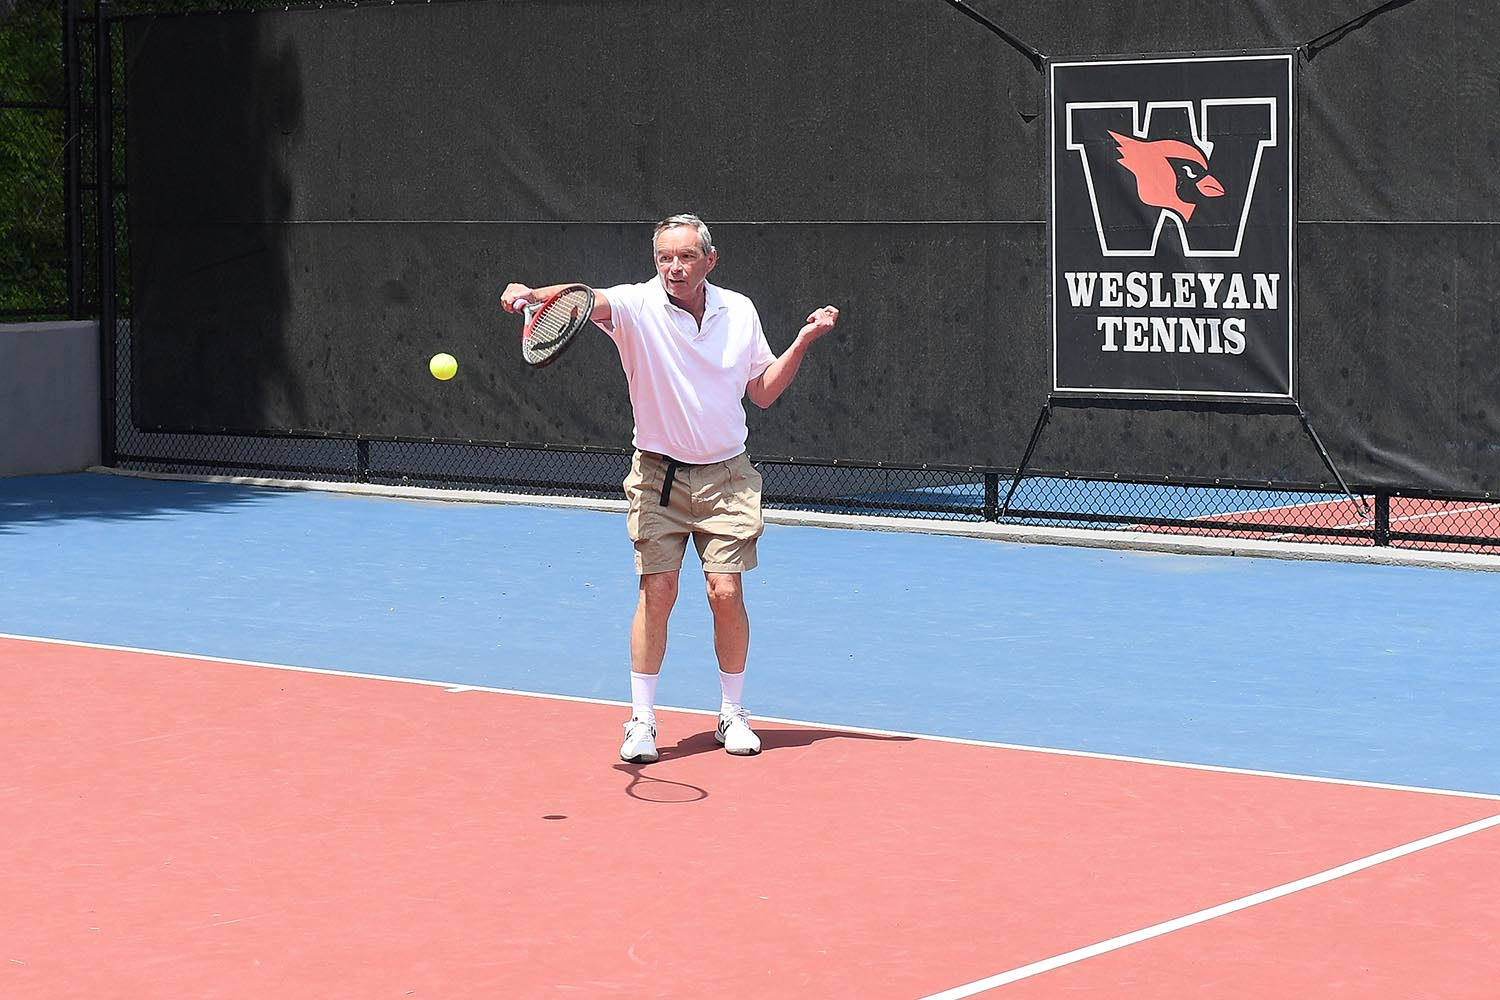 As a result of the extensive renovation, 16 new, state-of-the-art courts were created. In addition to the renovated courts, the improvements also included team benches, new windscreens, enhanced bleachers, new fencing, and cameras with the ability to live stream matches.